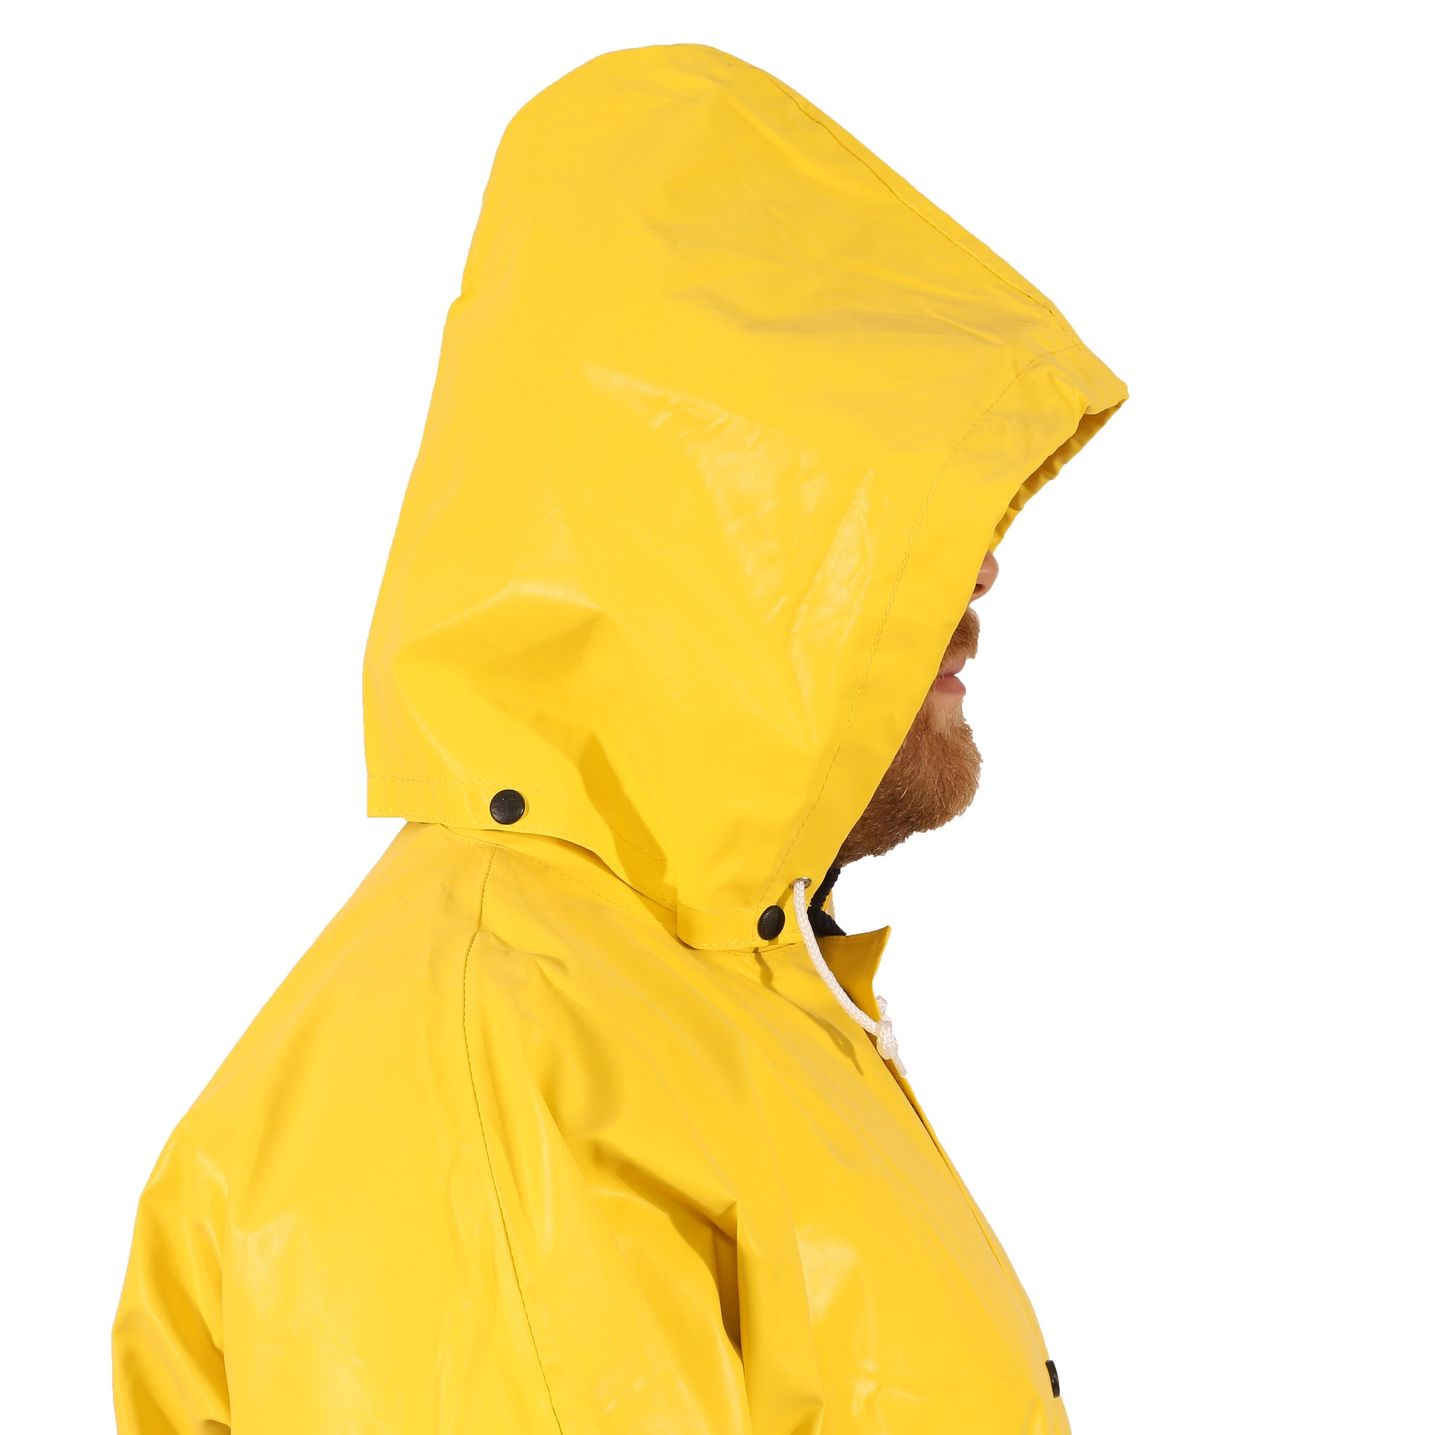 tingley-h12107-magnaprene-flame-resistant-detachable-rain-hood-neoprene-coated-chemical-resistant-side.jpg